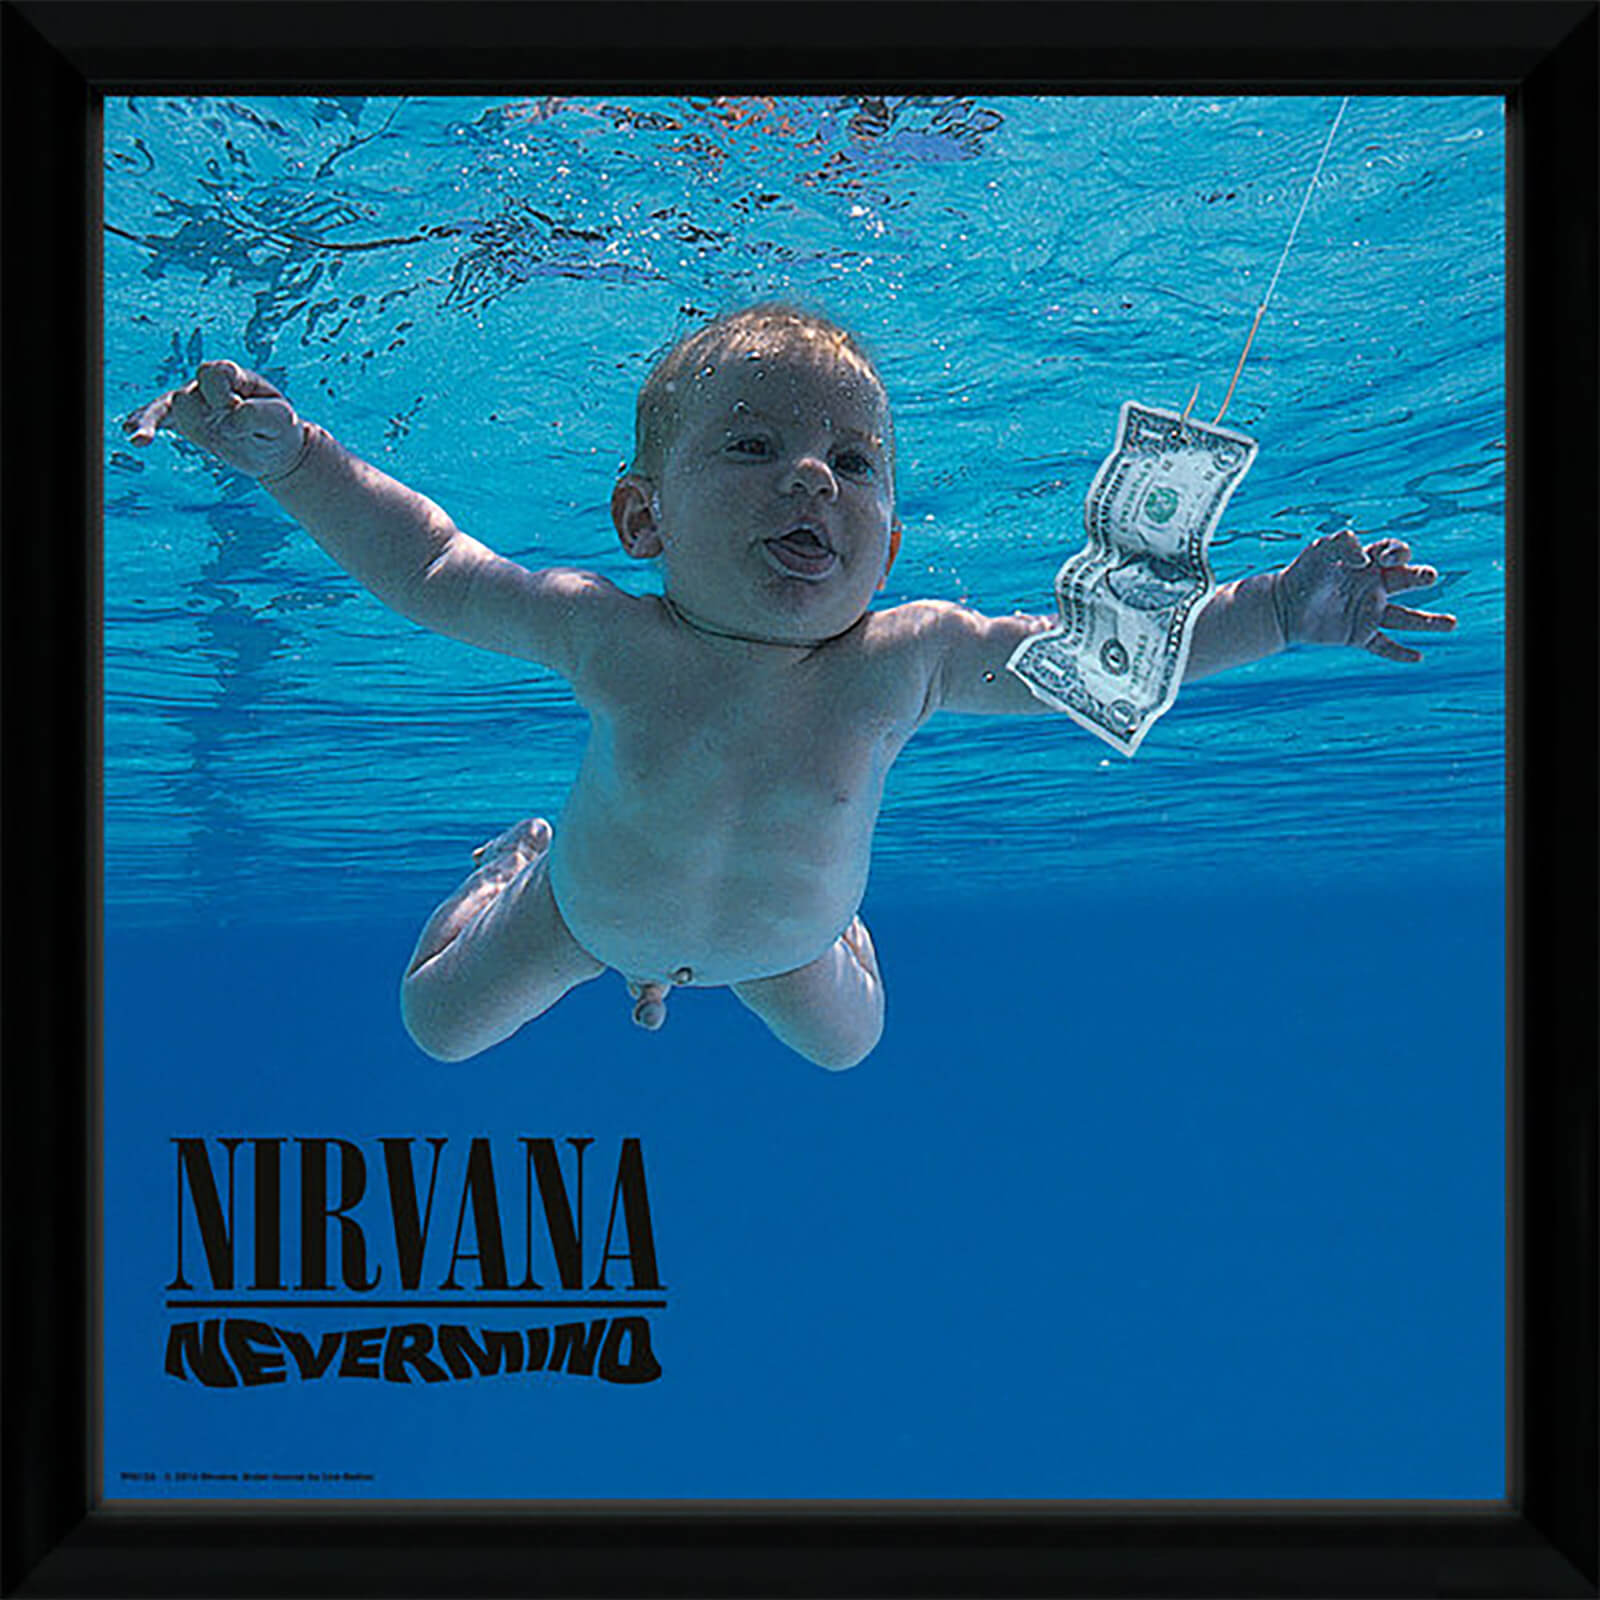 Nirvana Nevermind - 10 x 8 Inches Bagged Photograph